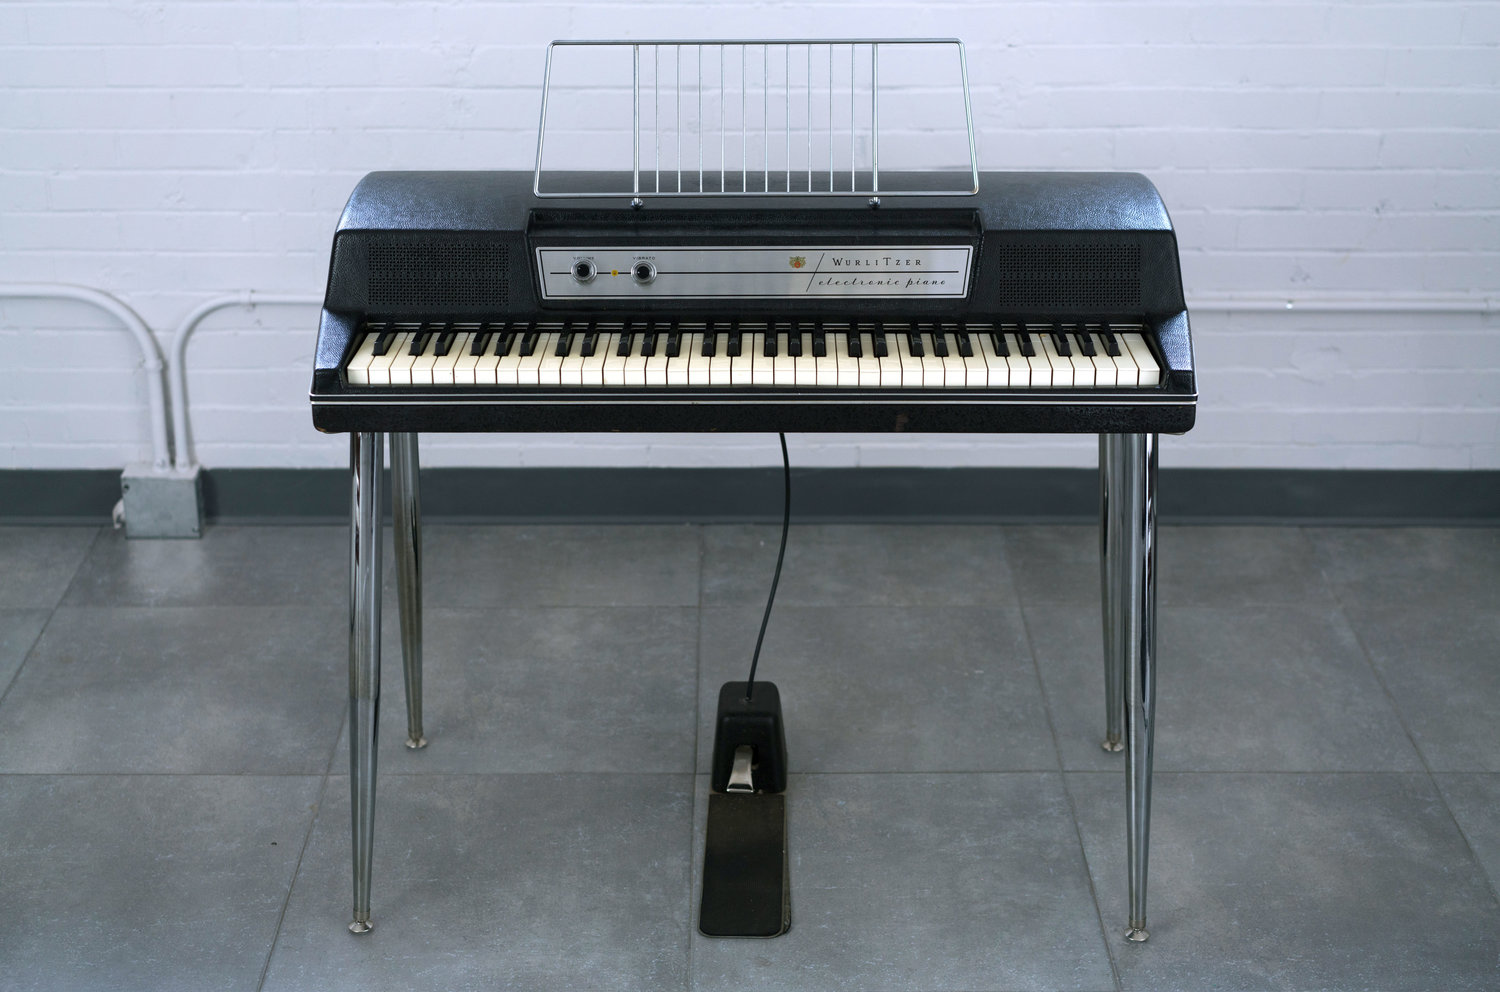 Differences Between the Wurlitzer 200 and 200a